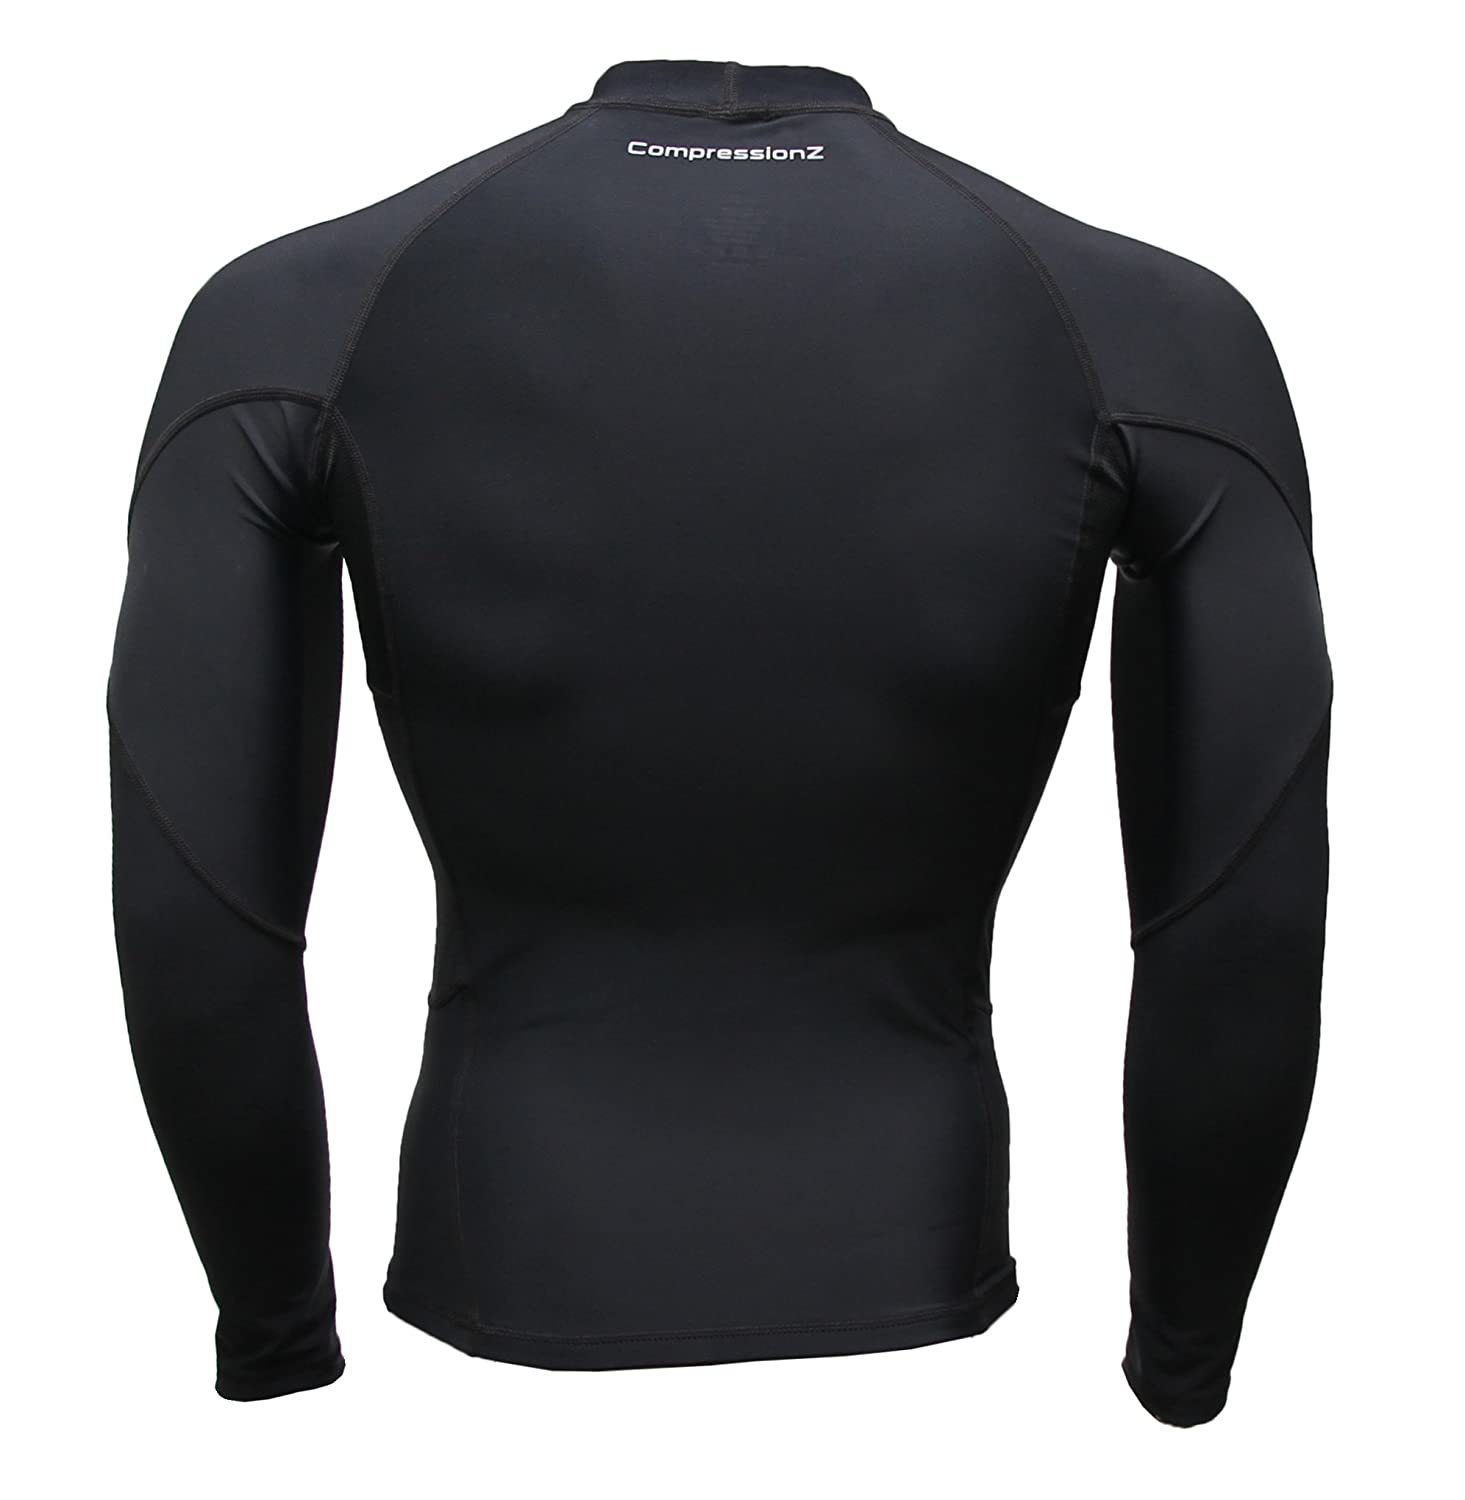 024c3ba66afb CompressionZ Men s Long Sleeve Compression Shirt - Performance Base Layer  for Fitness